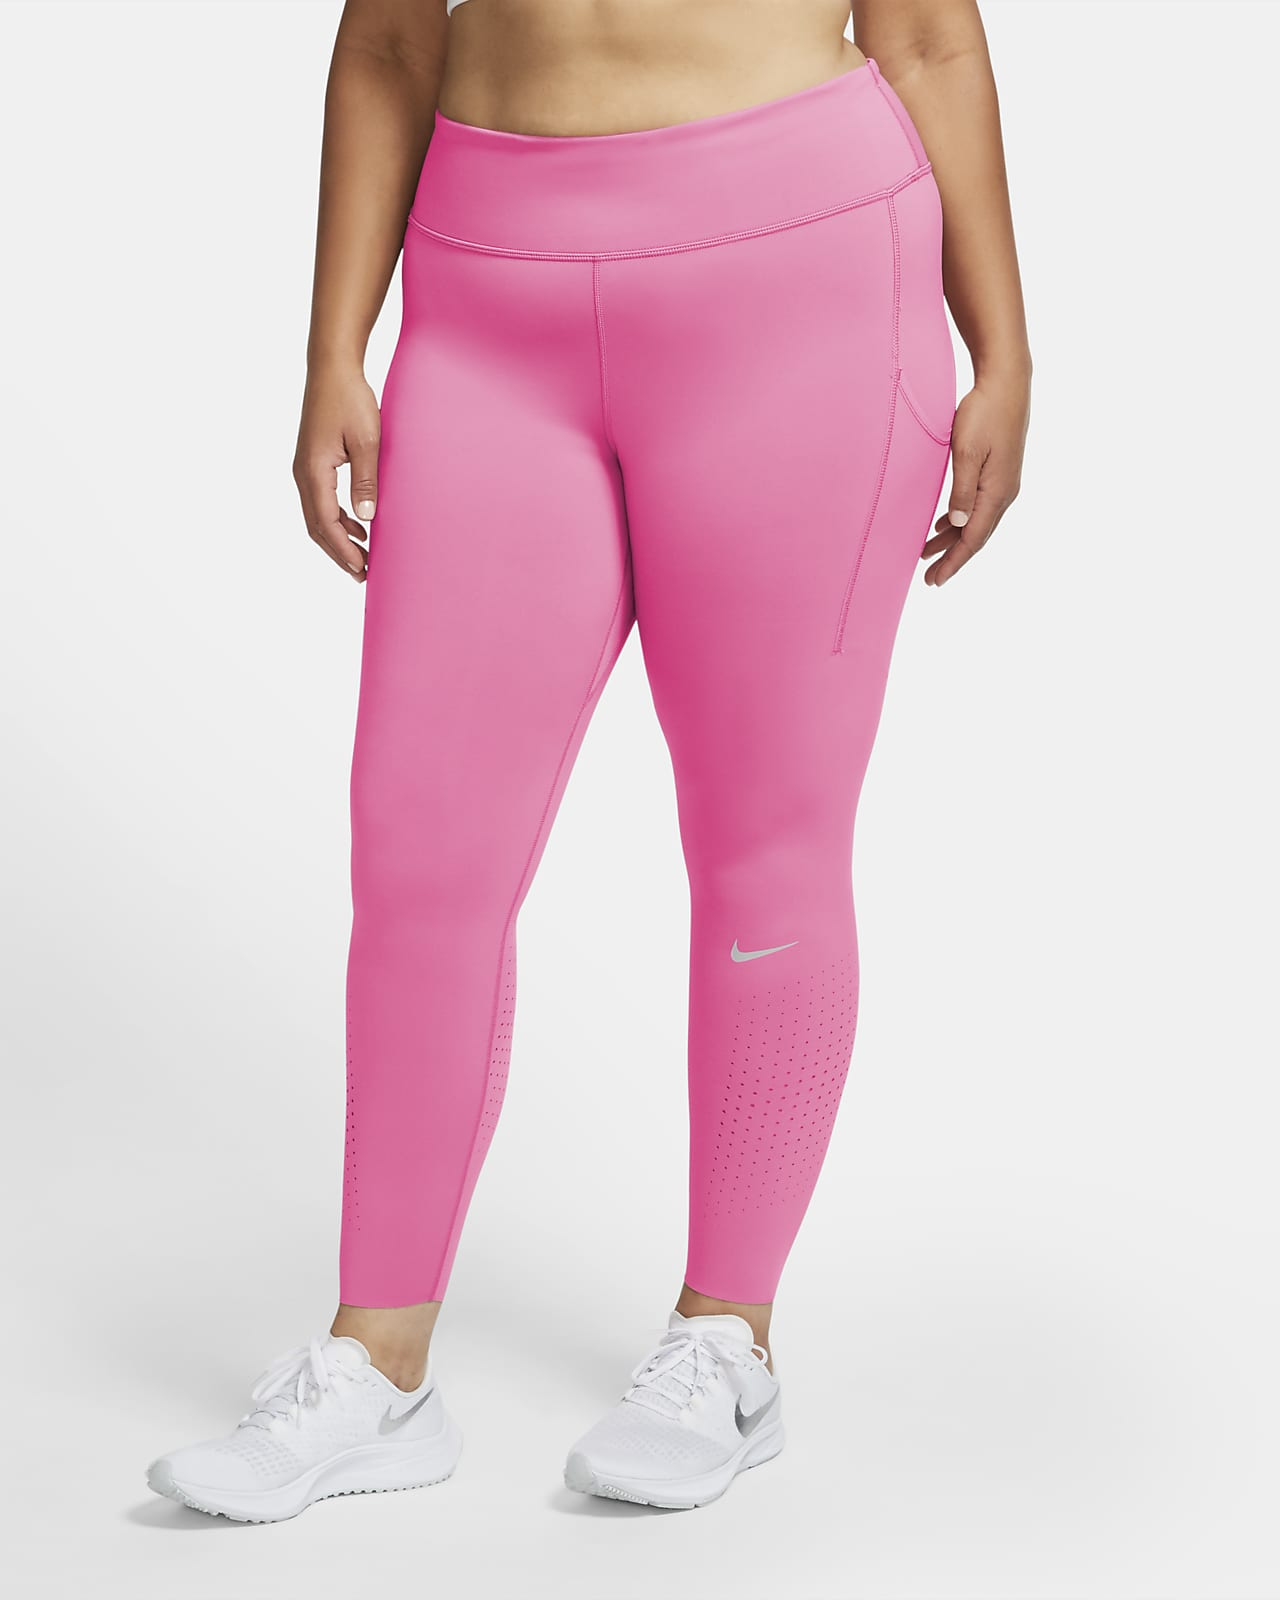 Nike Epic Luxe Women's Mid-Rise Pocket Running Leggings (Plus Size)